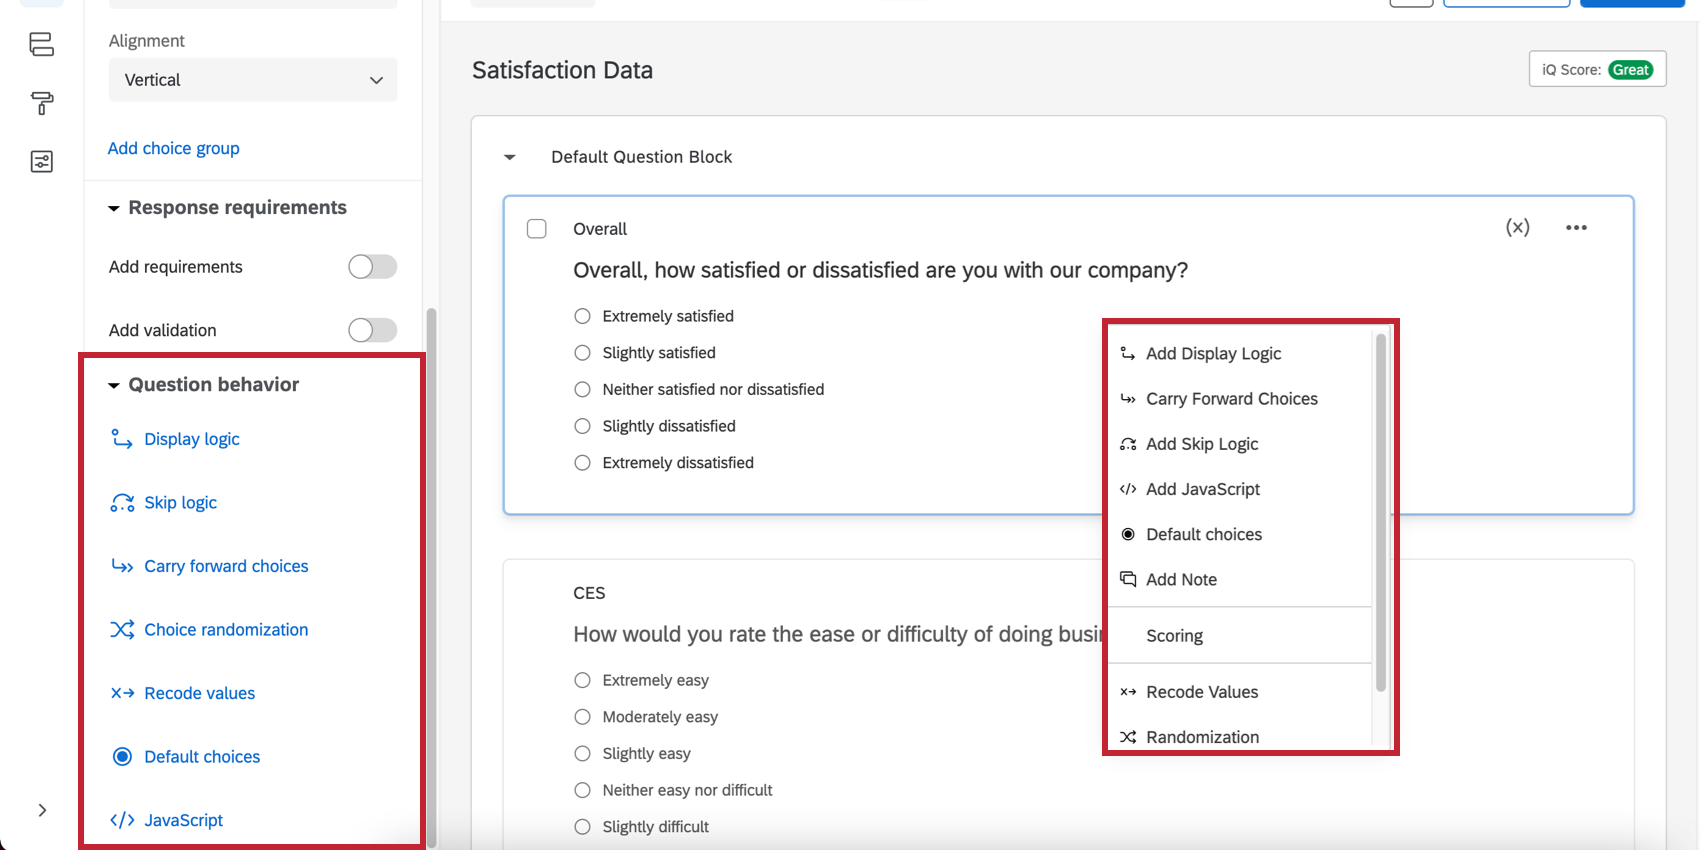 Question behavior menu on the left side and shown after right-clicking on the question itself